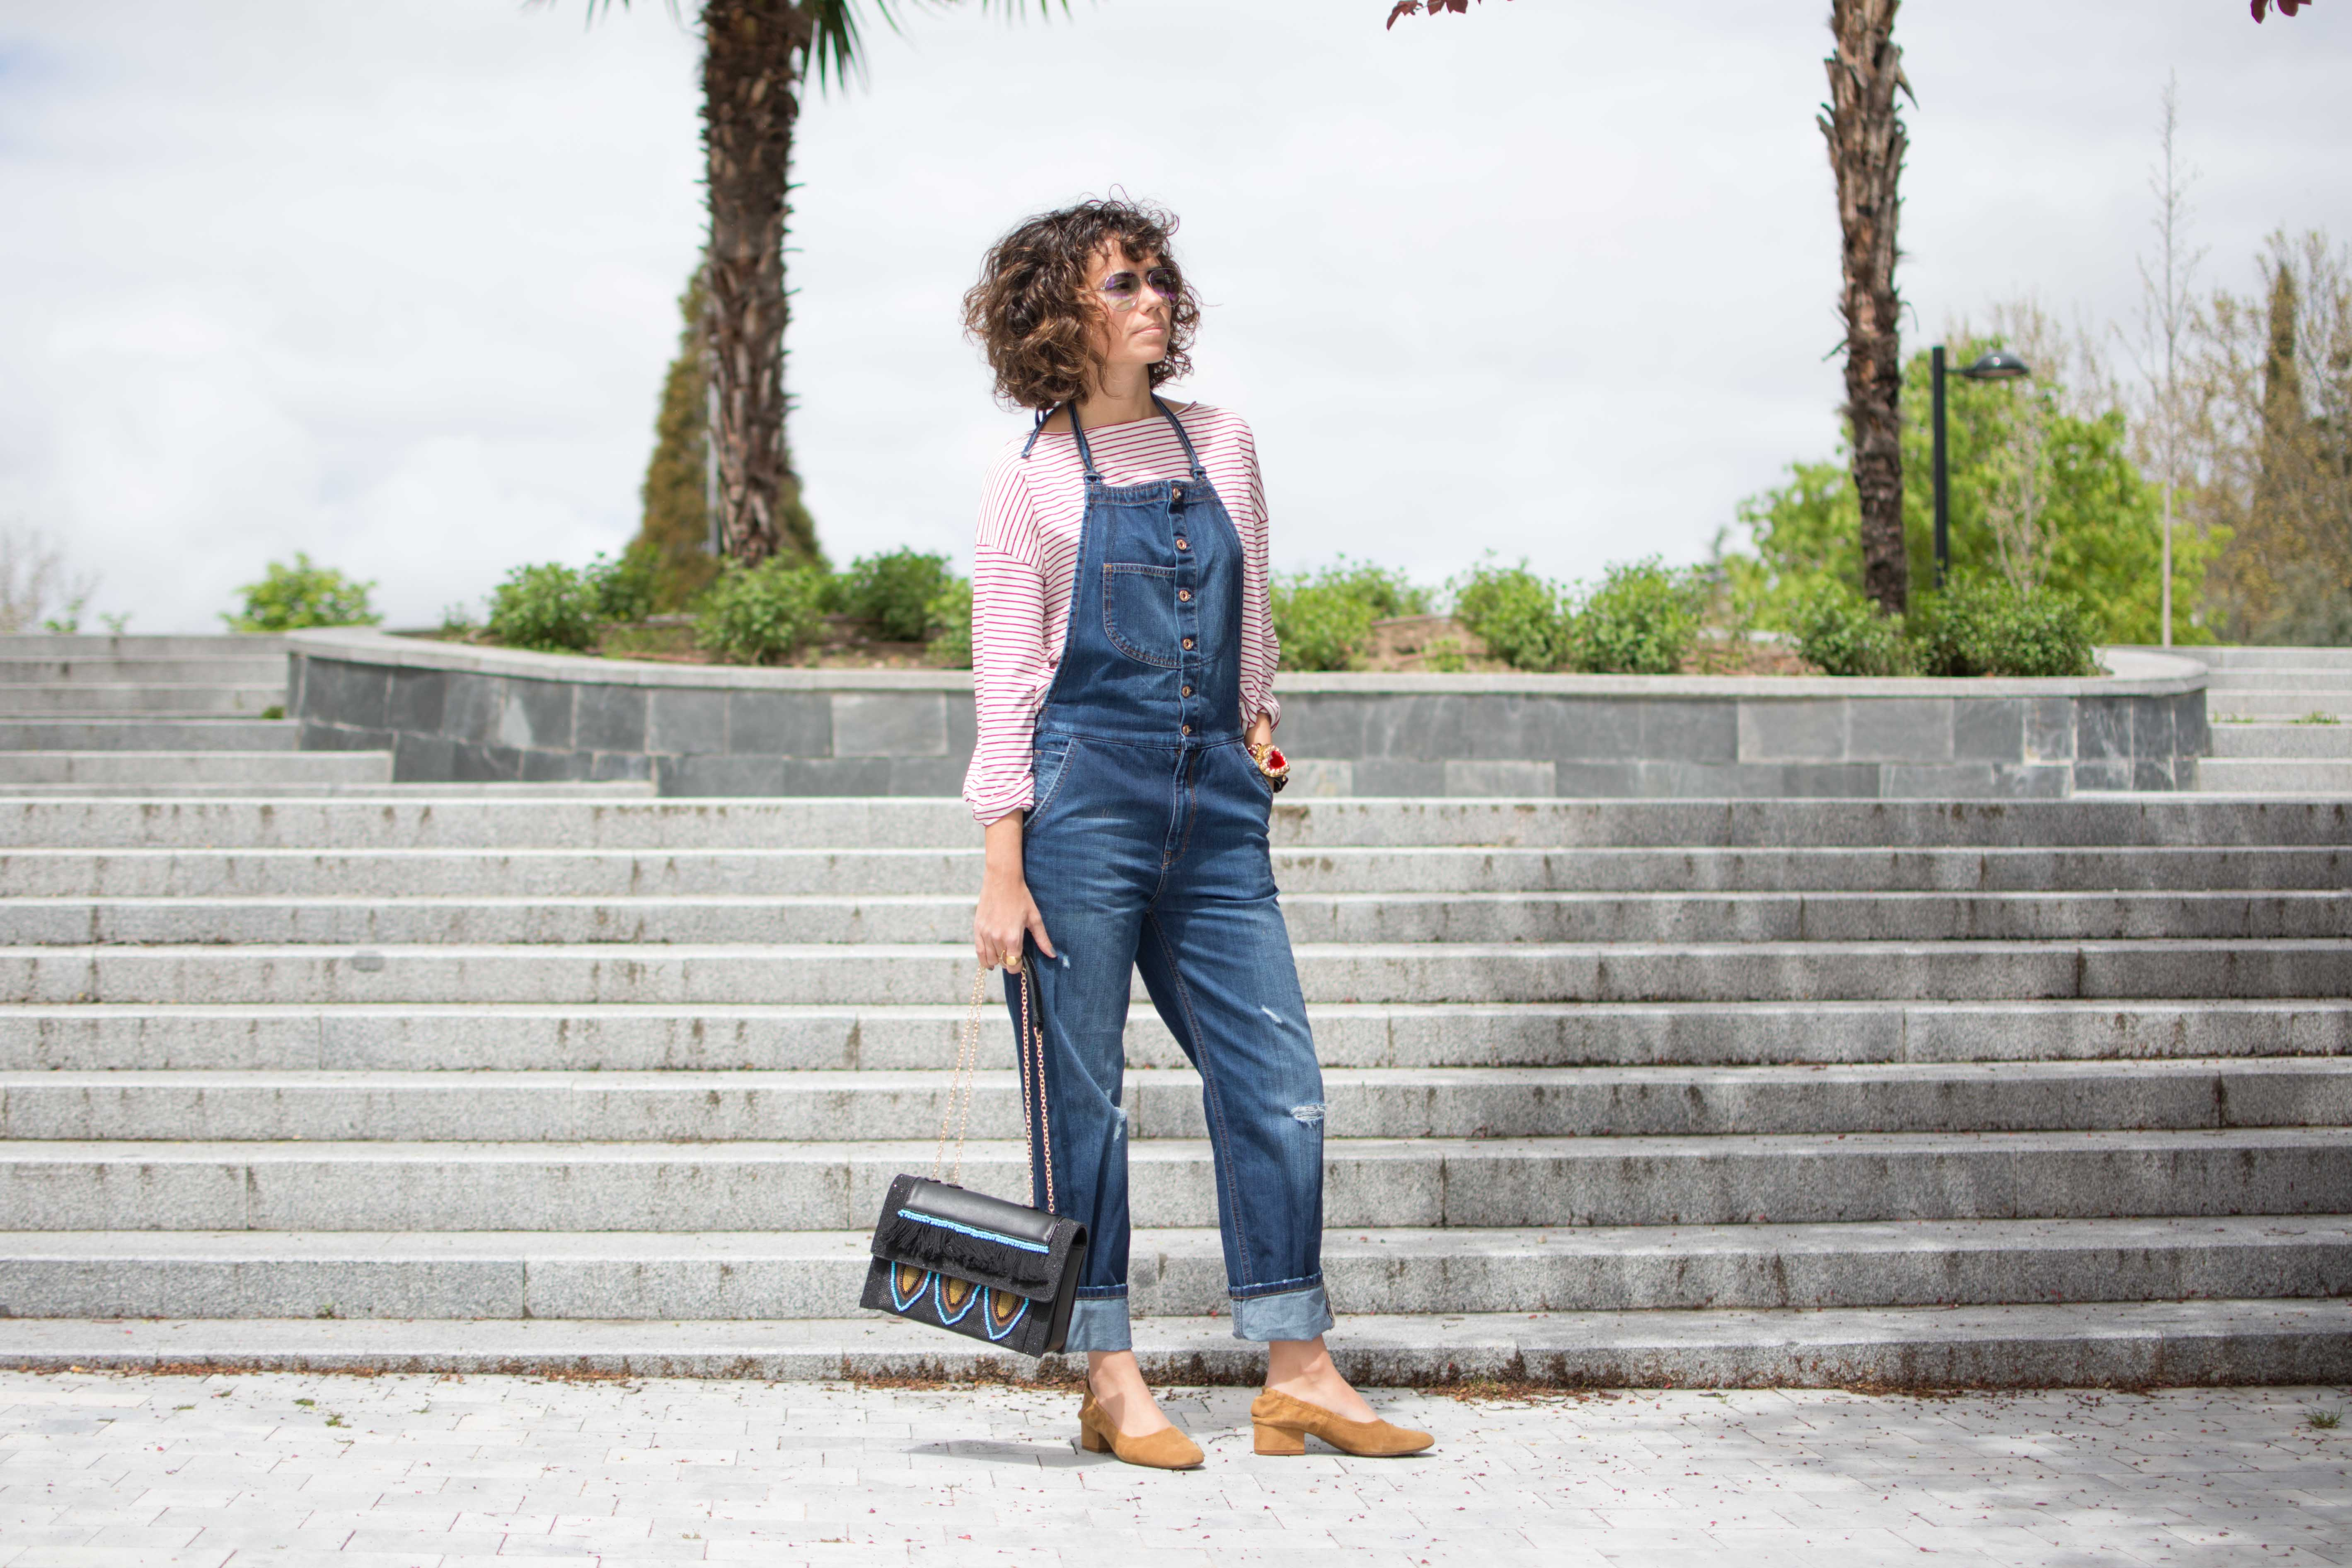 dungarees_strippes_shirt-streetstyle-tramsparent_sunnies-look-cool_lemonade